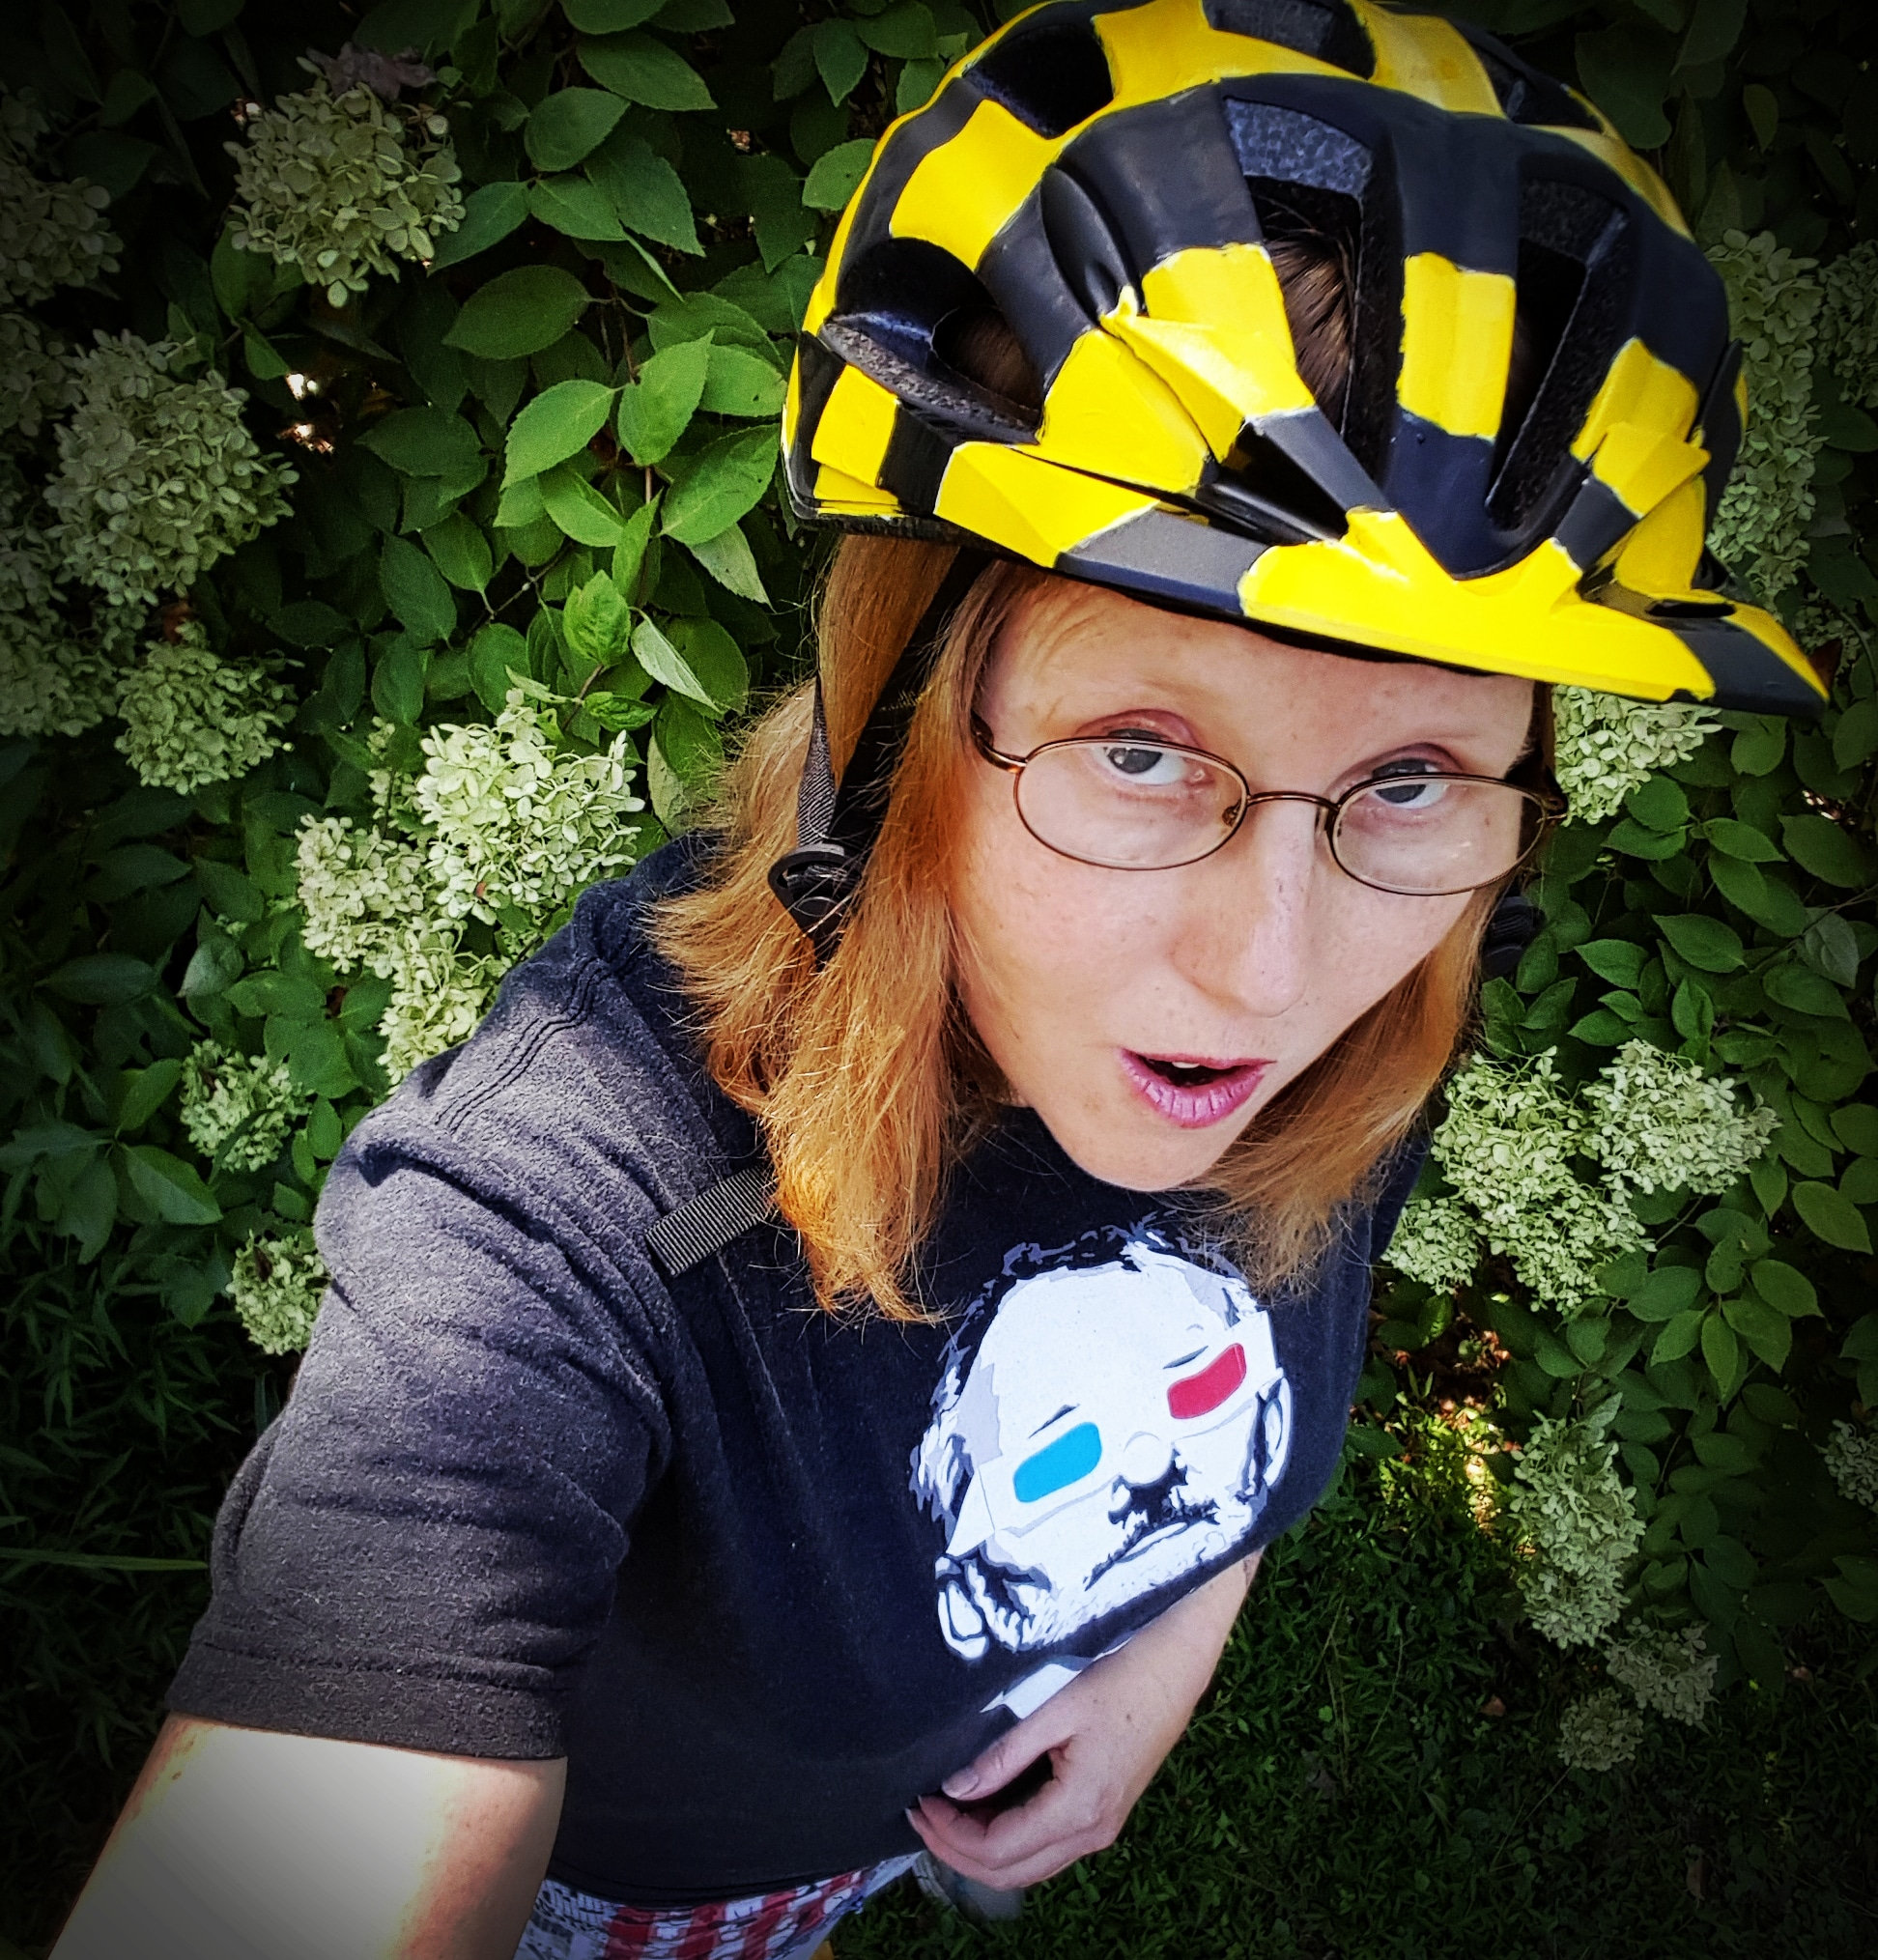 New bumble Bee bike helmet using acrylic paint. Drivers beware. Selfie by Dragonfly Leathrum